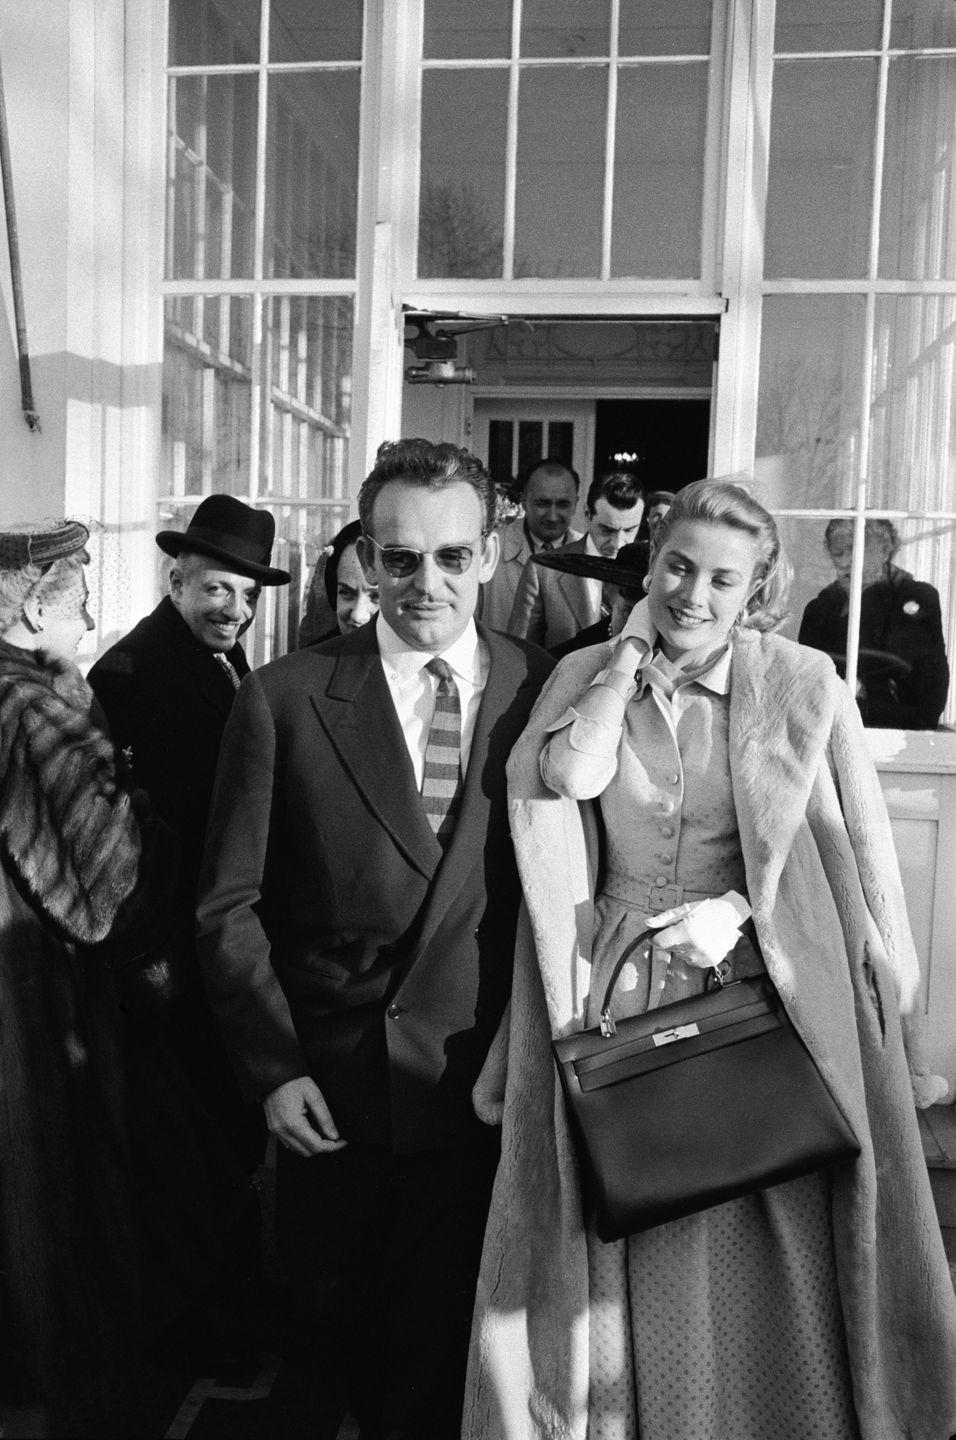 <p>She was beauty, she was Grace...and she had her own Hermès bag named for her. The Kelly bag is still around today and remains one of the brand's most popular silhouettes. </p>